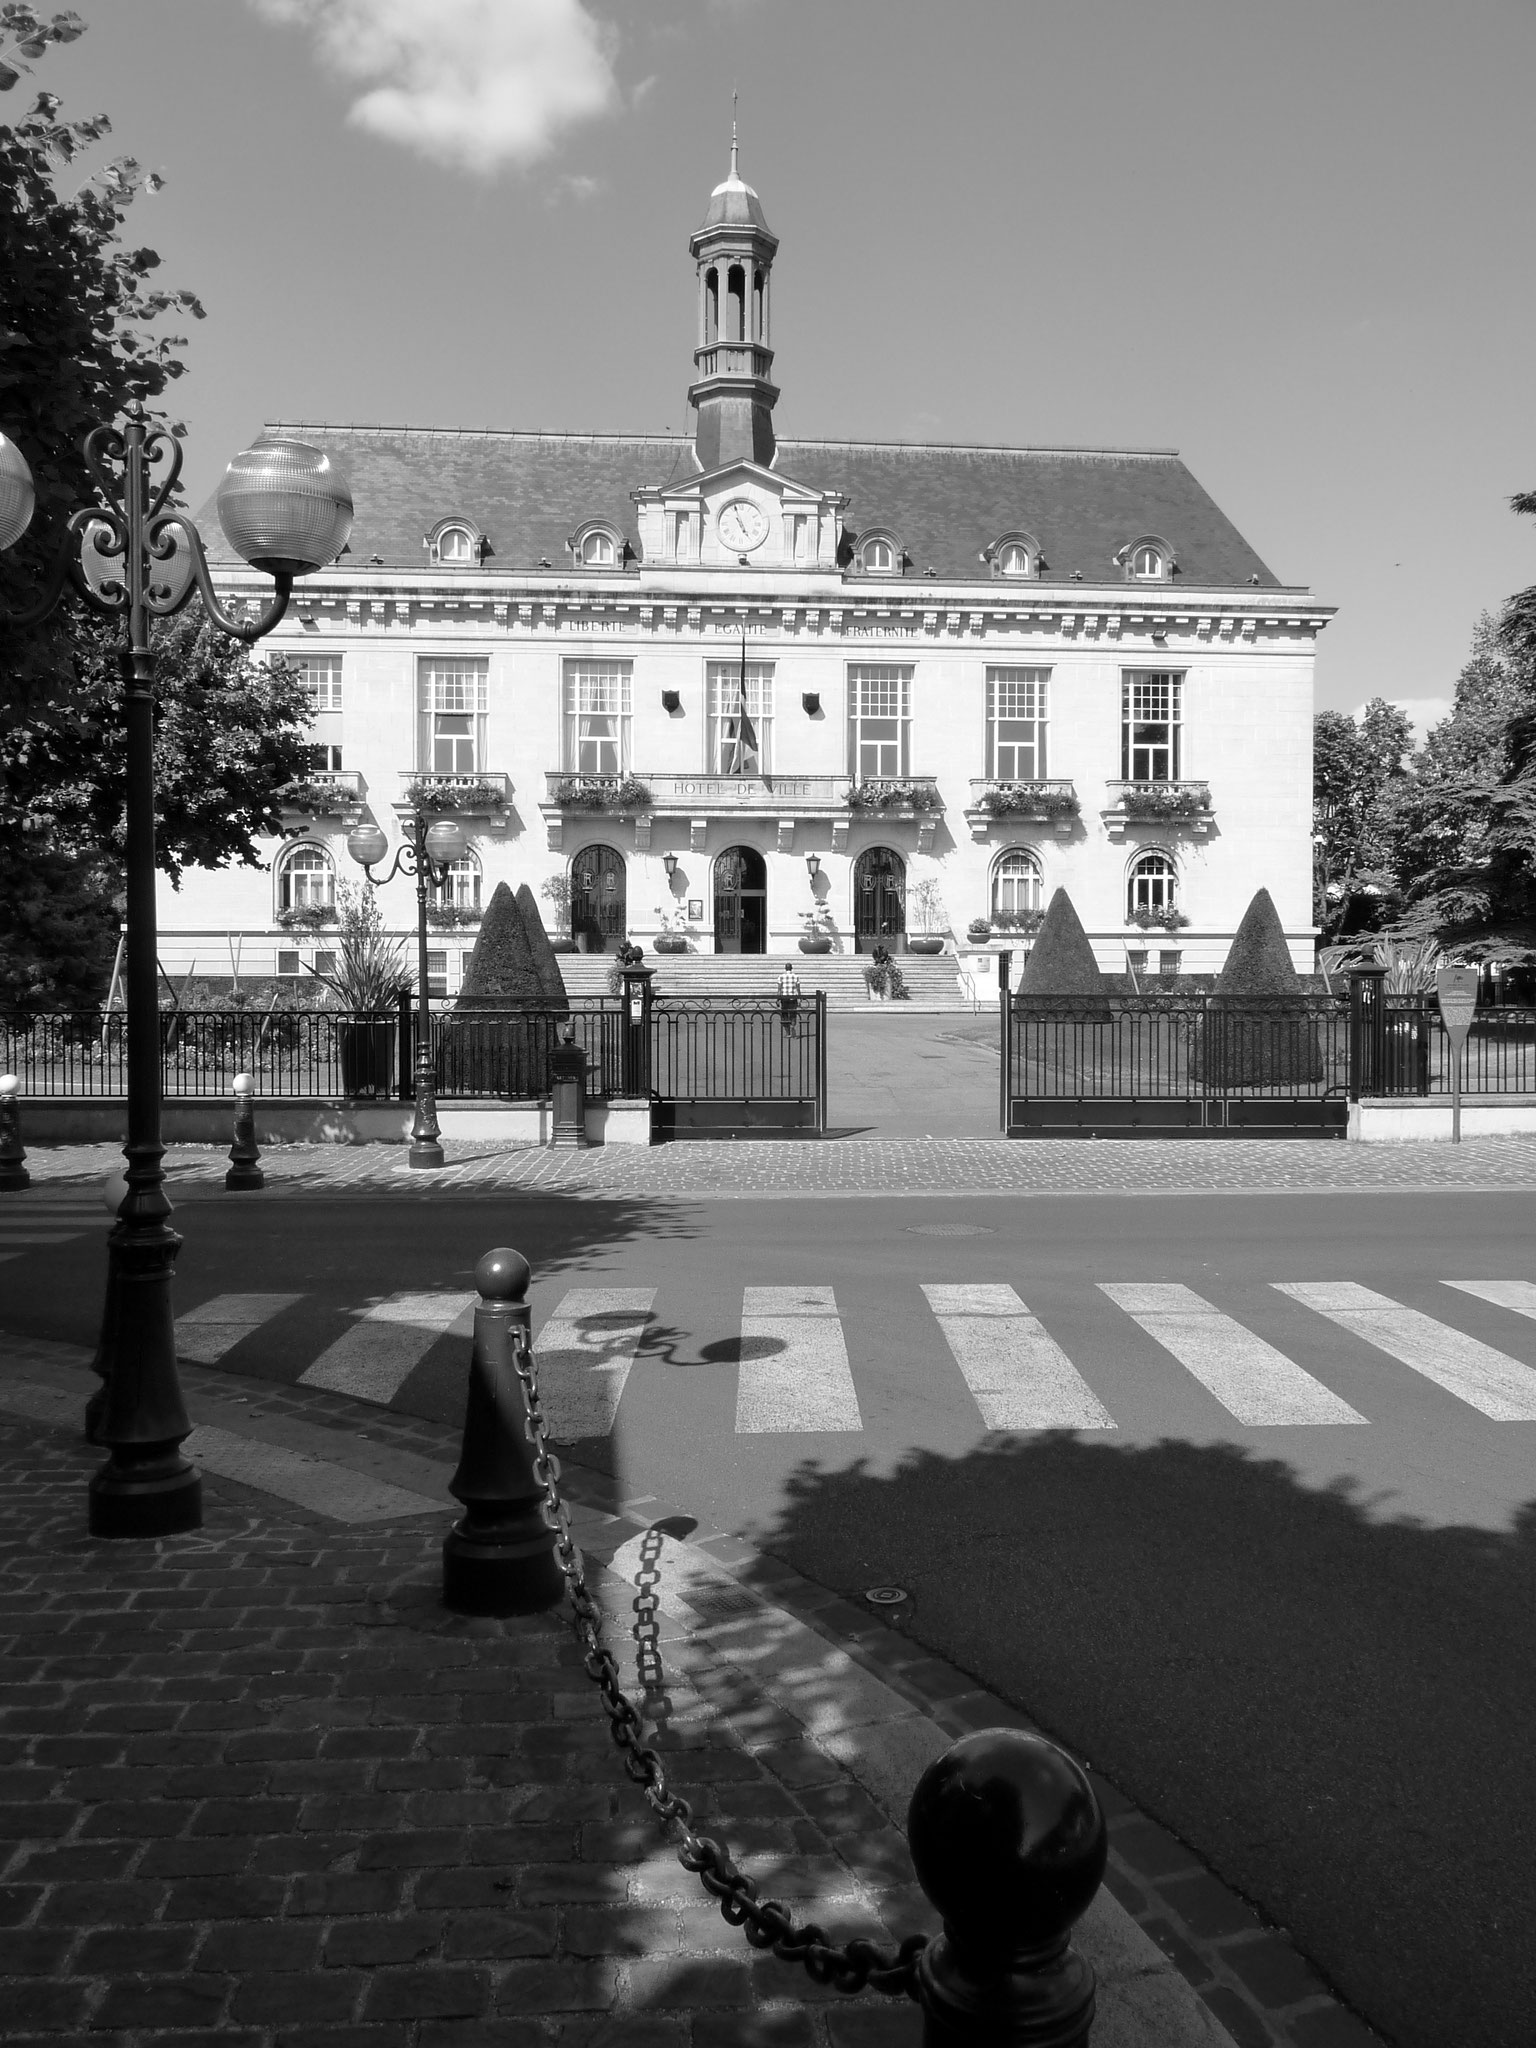 Mairie d'Aulnay en vertical - photo - Constant JOSSE